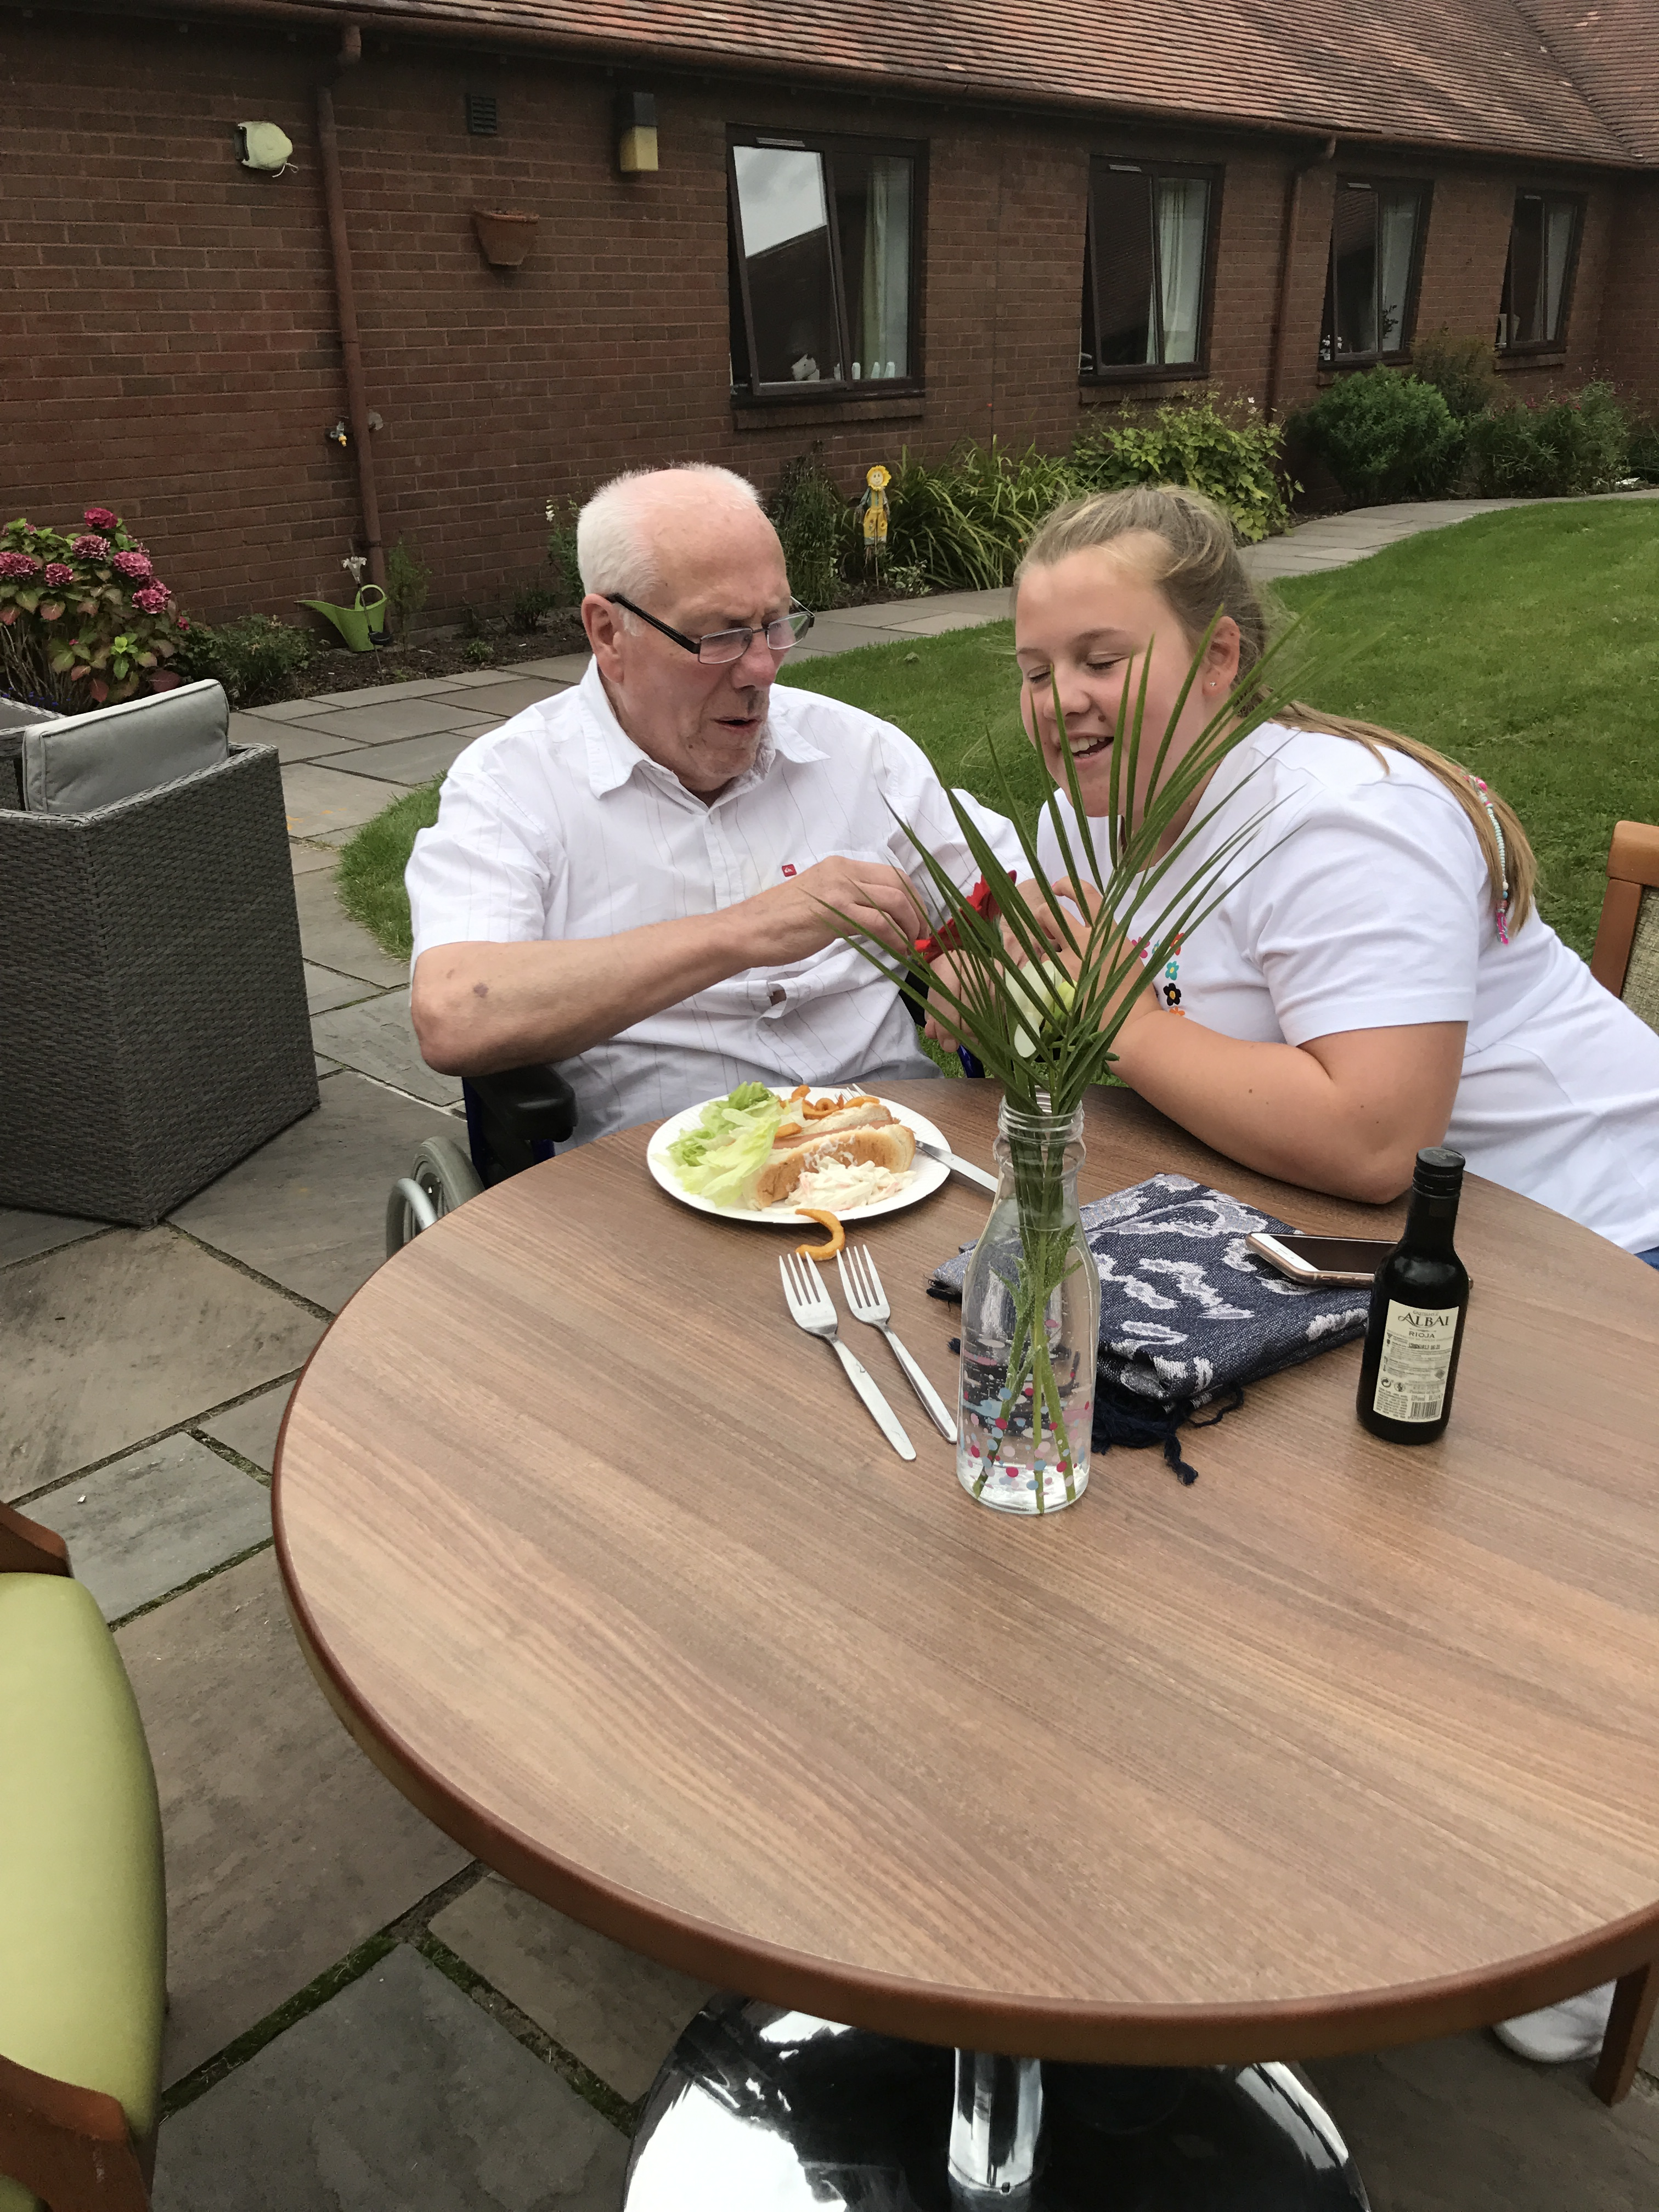 Grace Court Garden Aug 17: Key Healthcare is dedicated to caring for elderly residents in safe. We have multiple dementia care homes including our care home middlesbrough, our care home St. Helen and care home saltburn. We excel in monitoring and improving care levels.